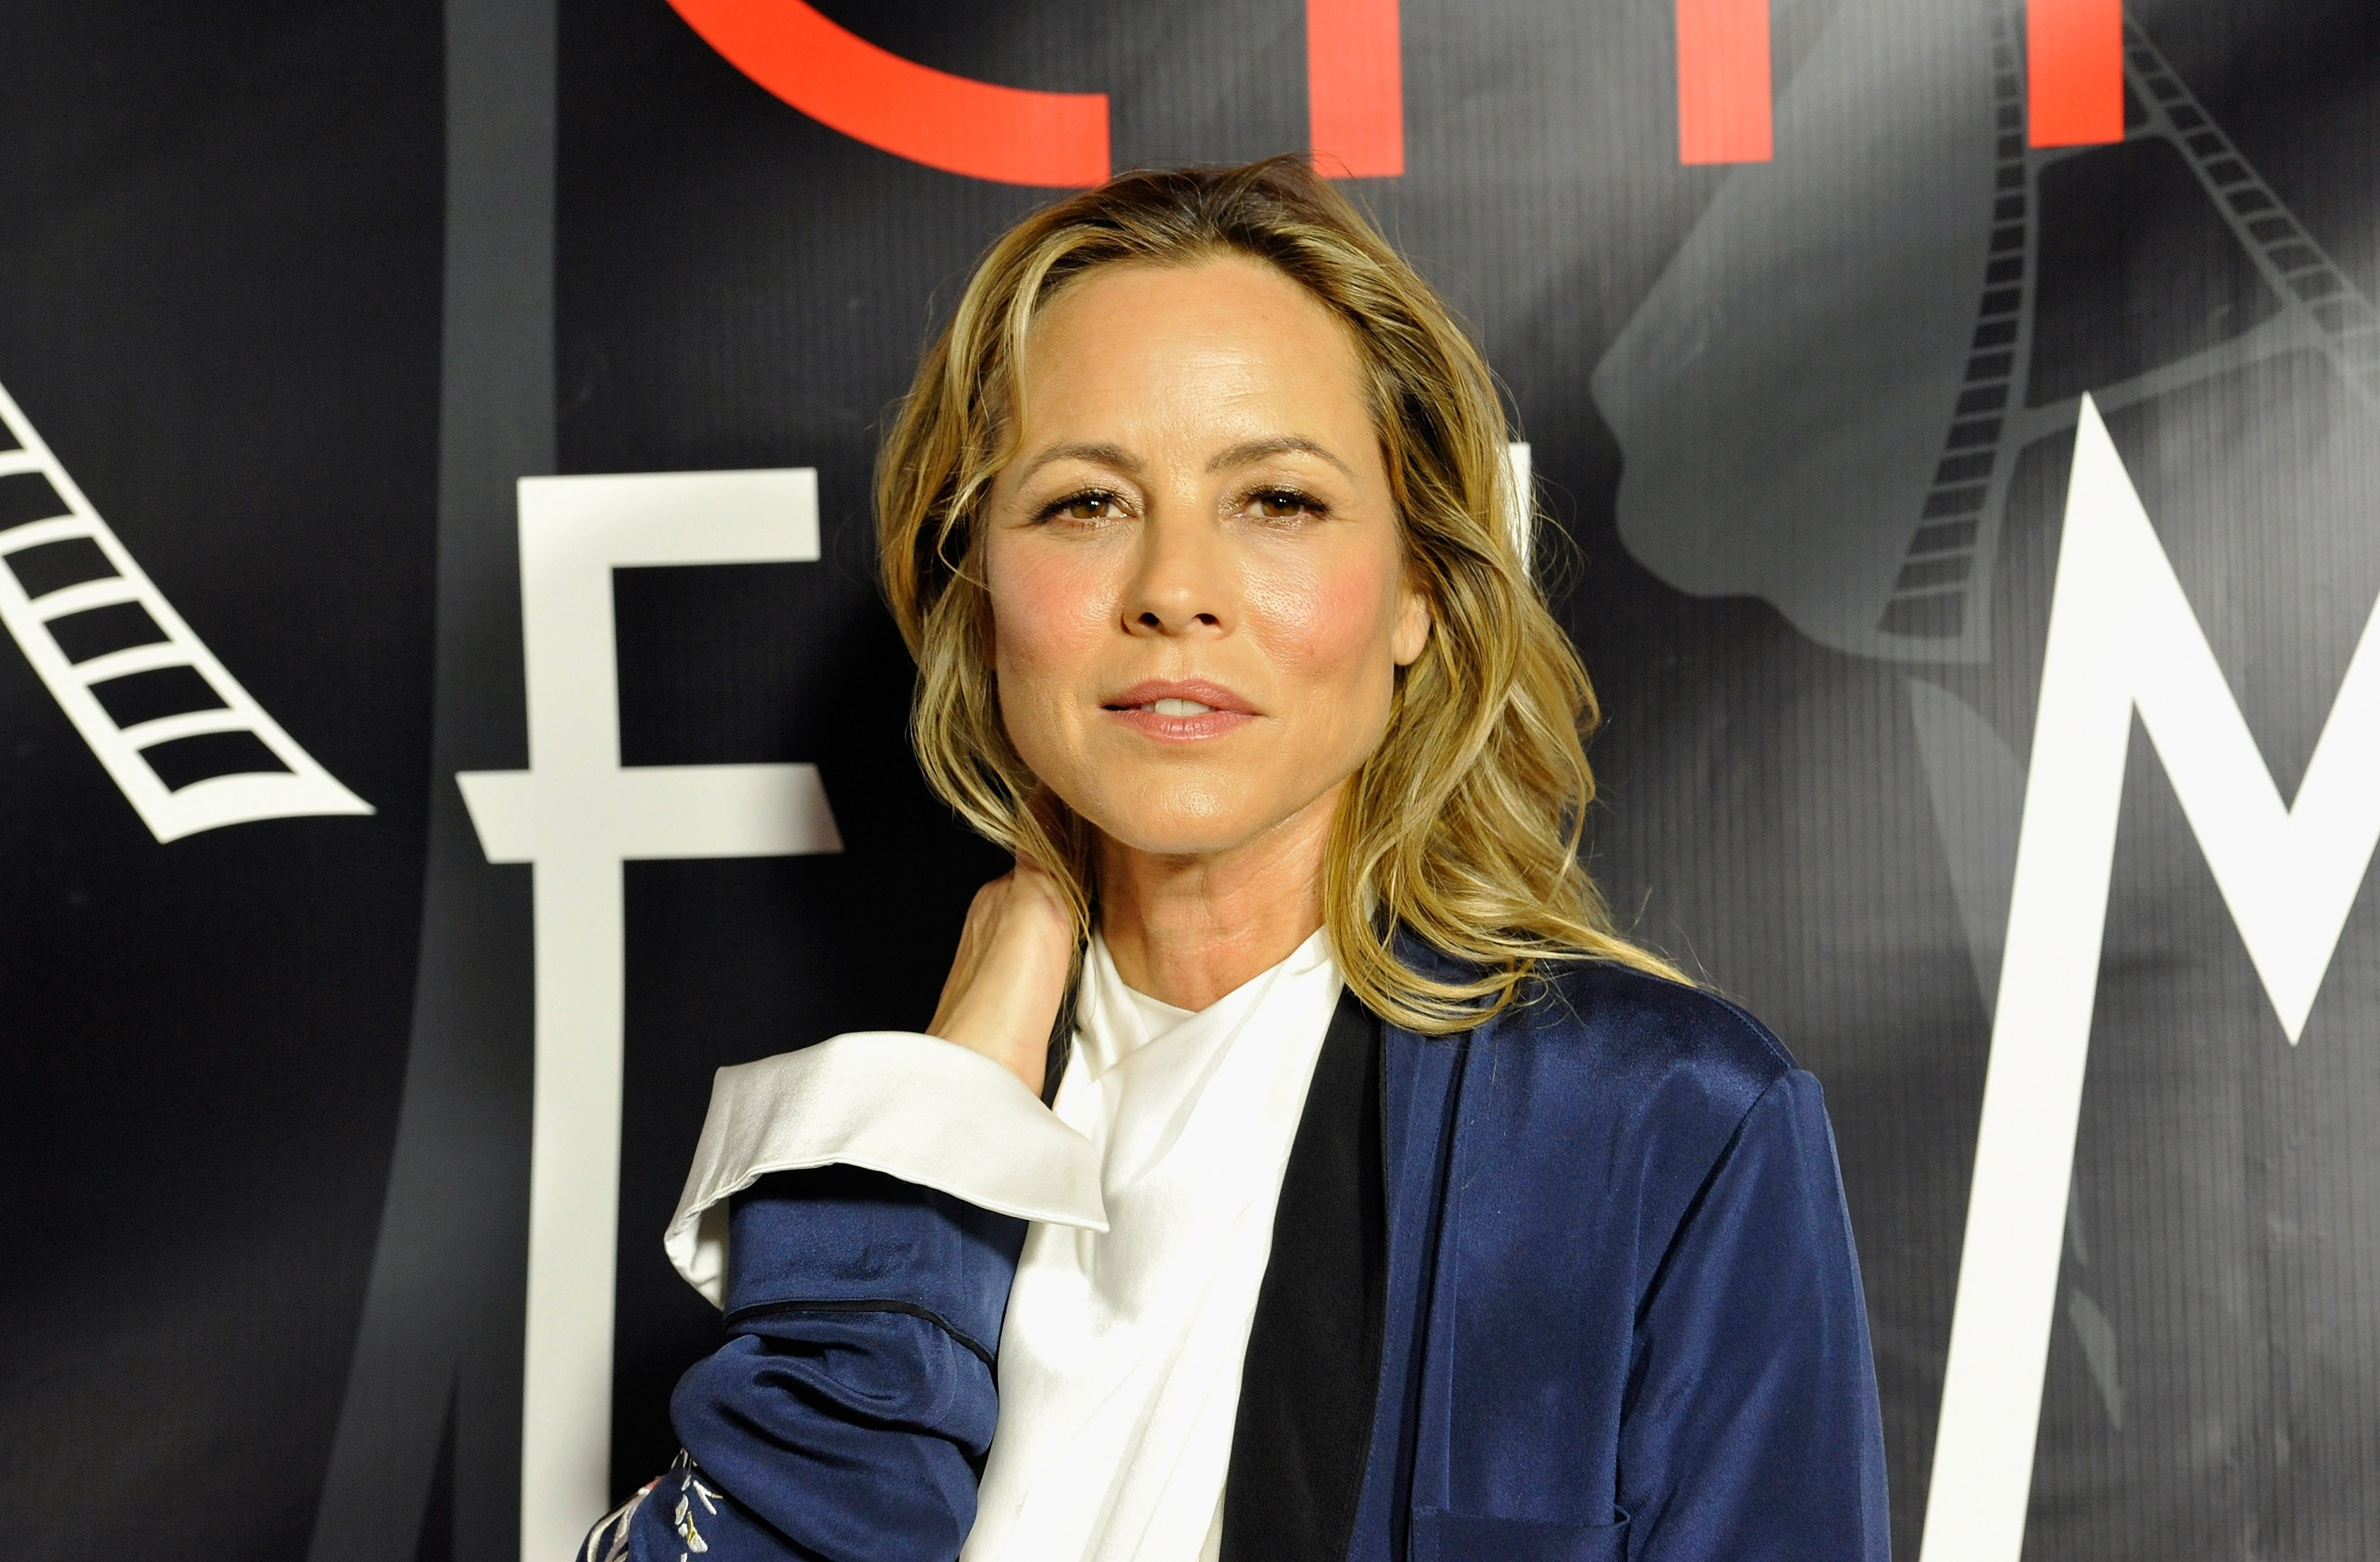 Maria Bello attends the 4th Annual CineFashion Film Awards in Los Angeles on October 8, 2017 | Photo: Getty Images